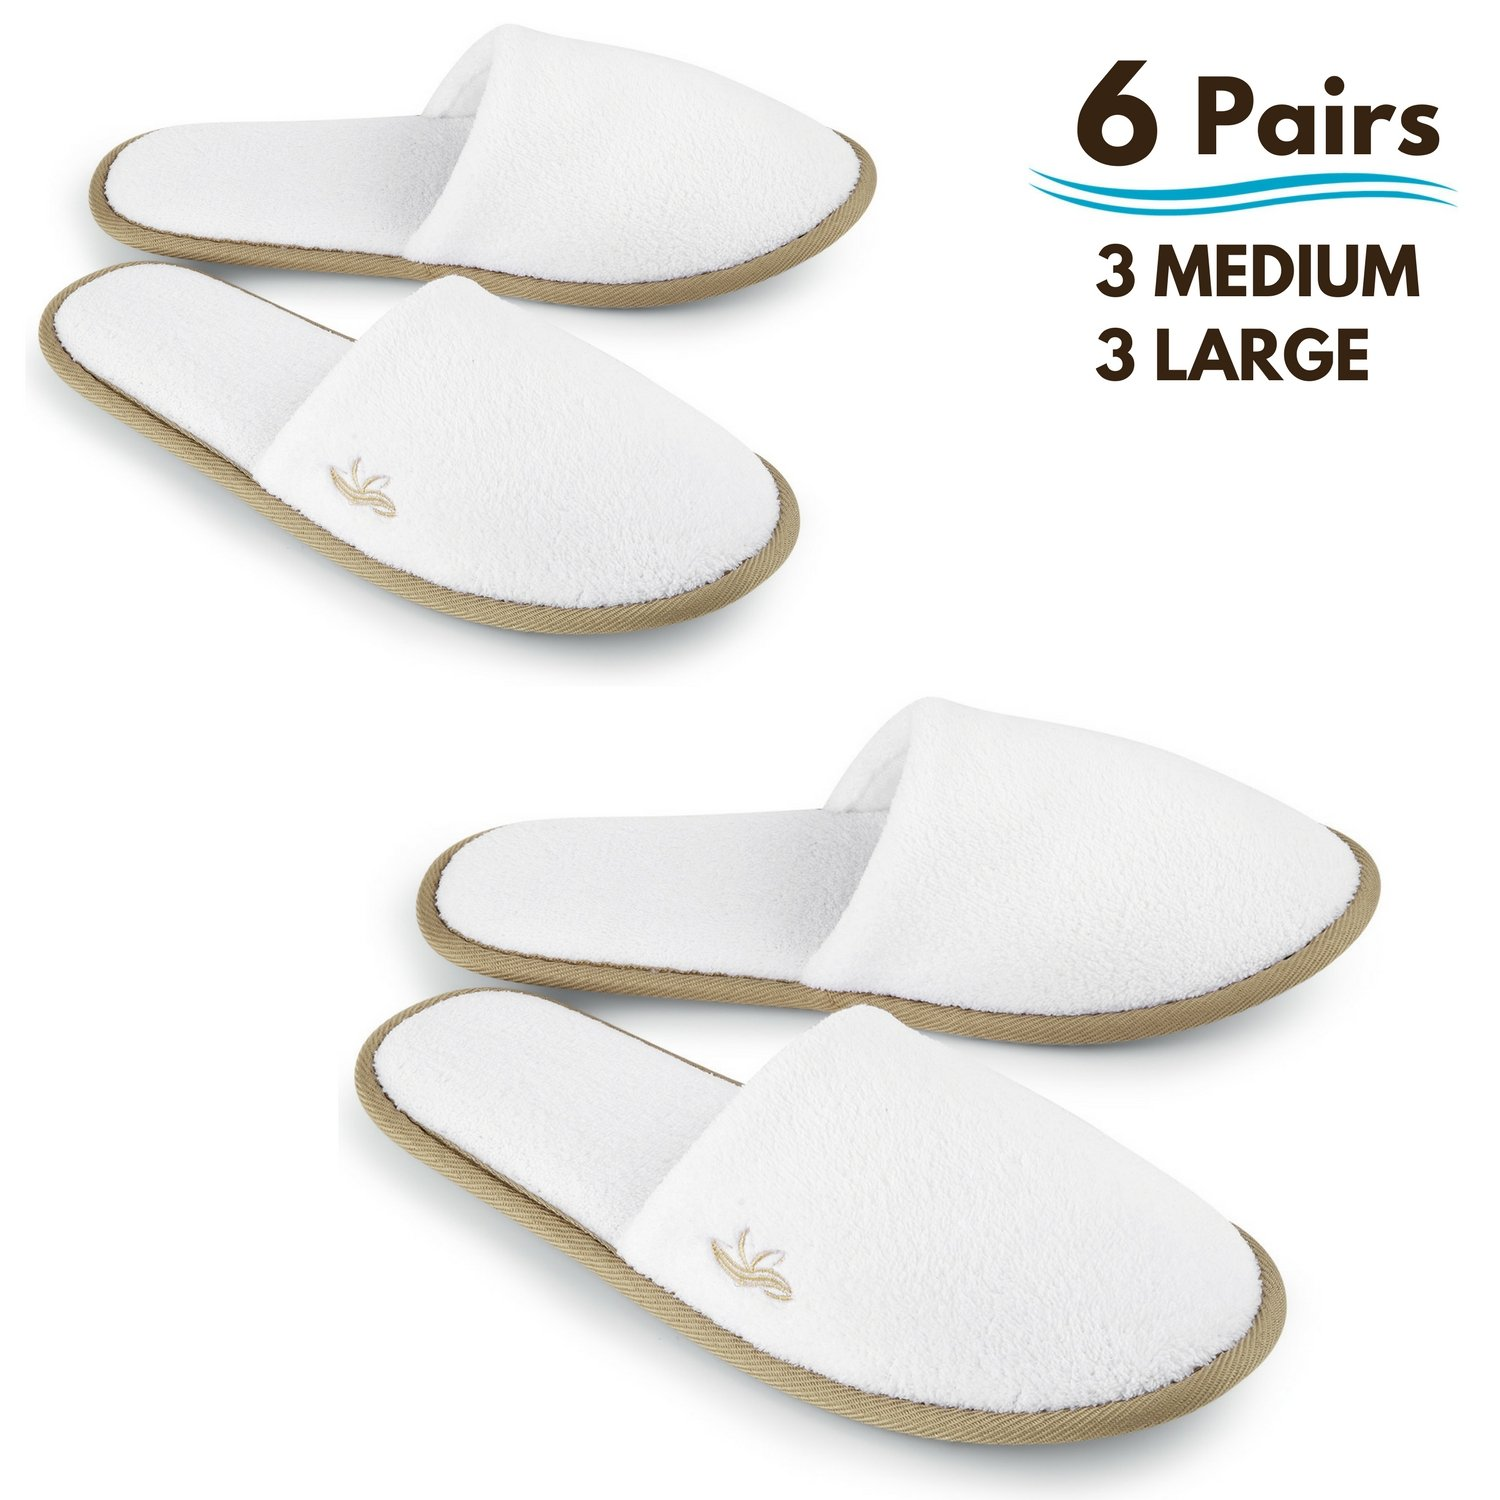 BERGMAN KELLY Spa Slippers, Closed Toe (White, Cocoa Trim, 6 Pairs- 3 Large, 3 Medium) Disposable Indoor Hotel Slippers for Men and Women, Fluffy Coral Fleece, Deluxe Padded Sole for Extra Comfort by BERGMAN KELLY (Image #1)